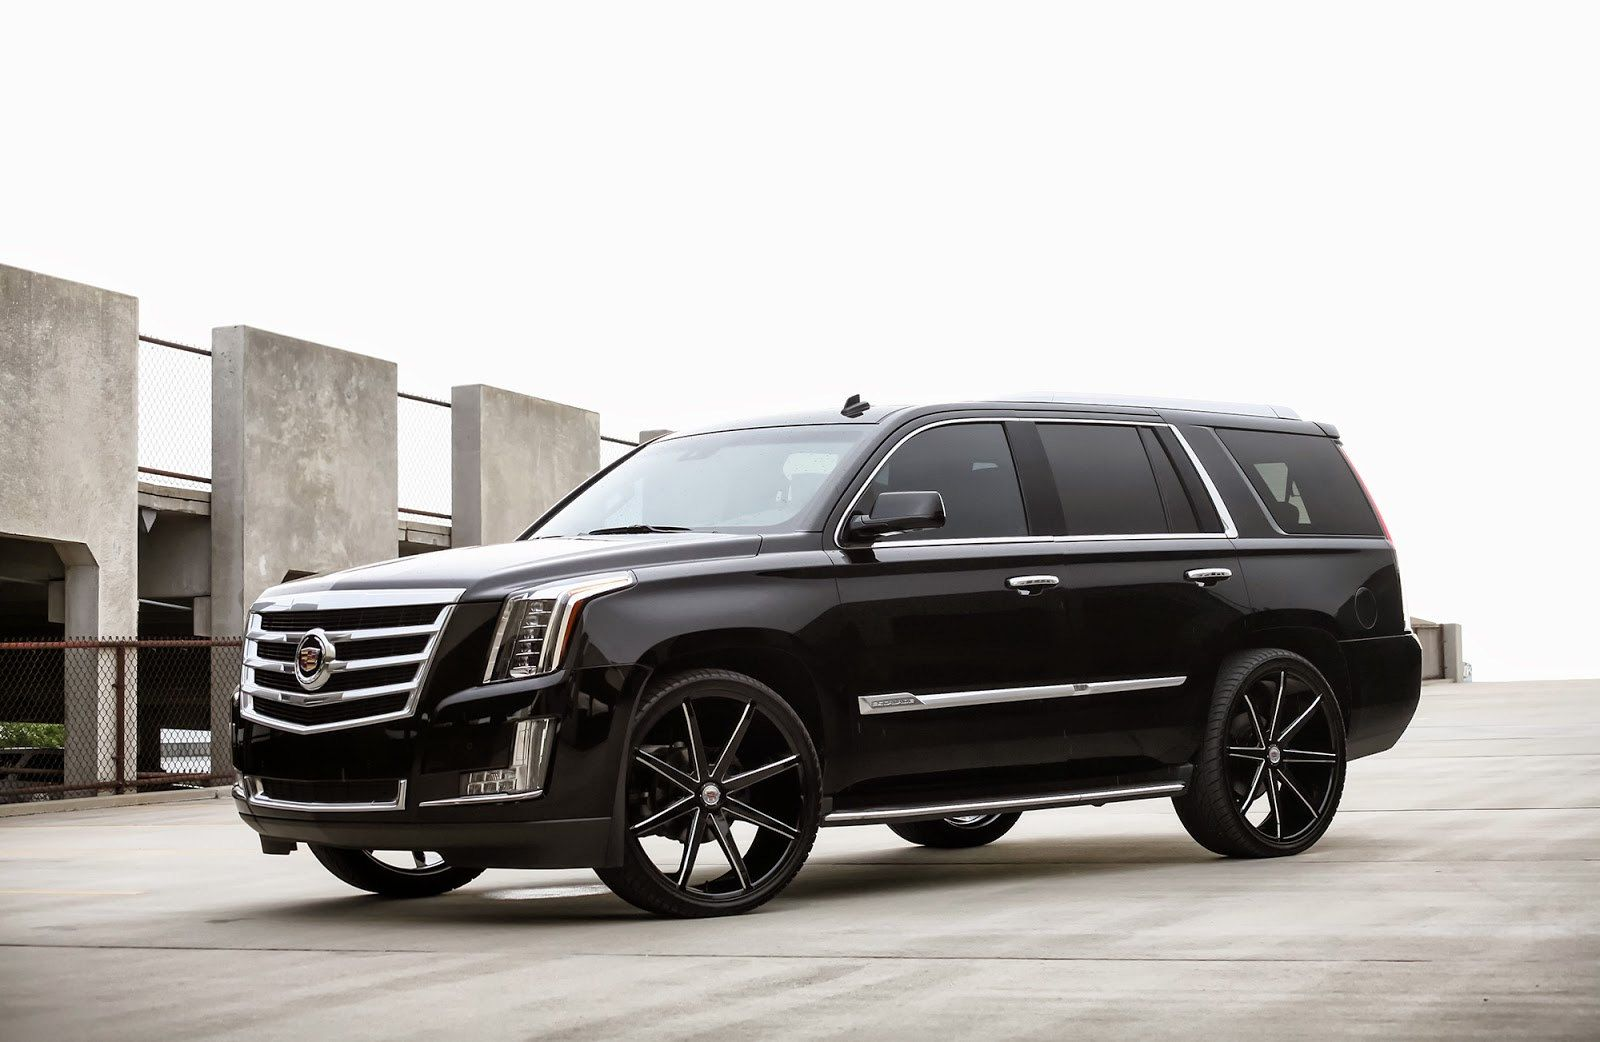 26 2015 cadillac escalade by dub wheels 01 voitures. Black Bedroom Furniture Sets. Home Design Ideas